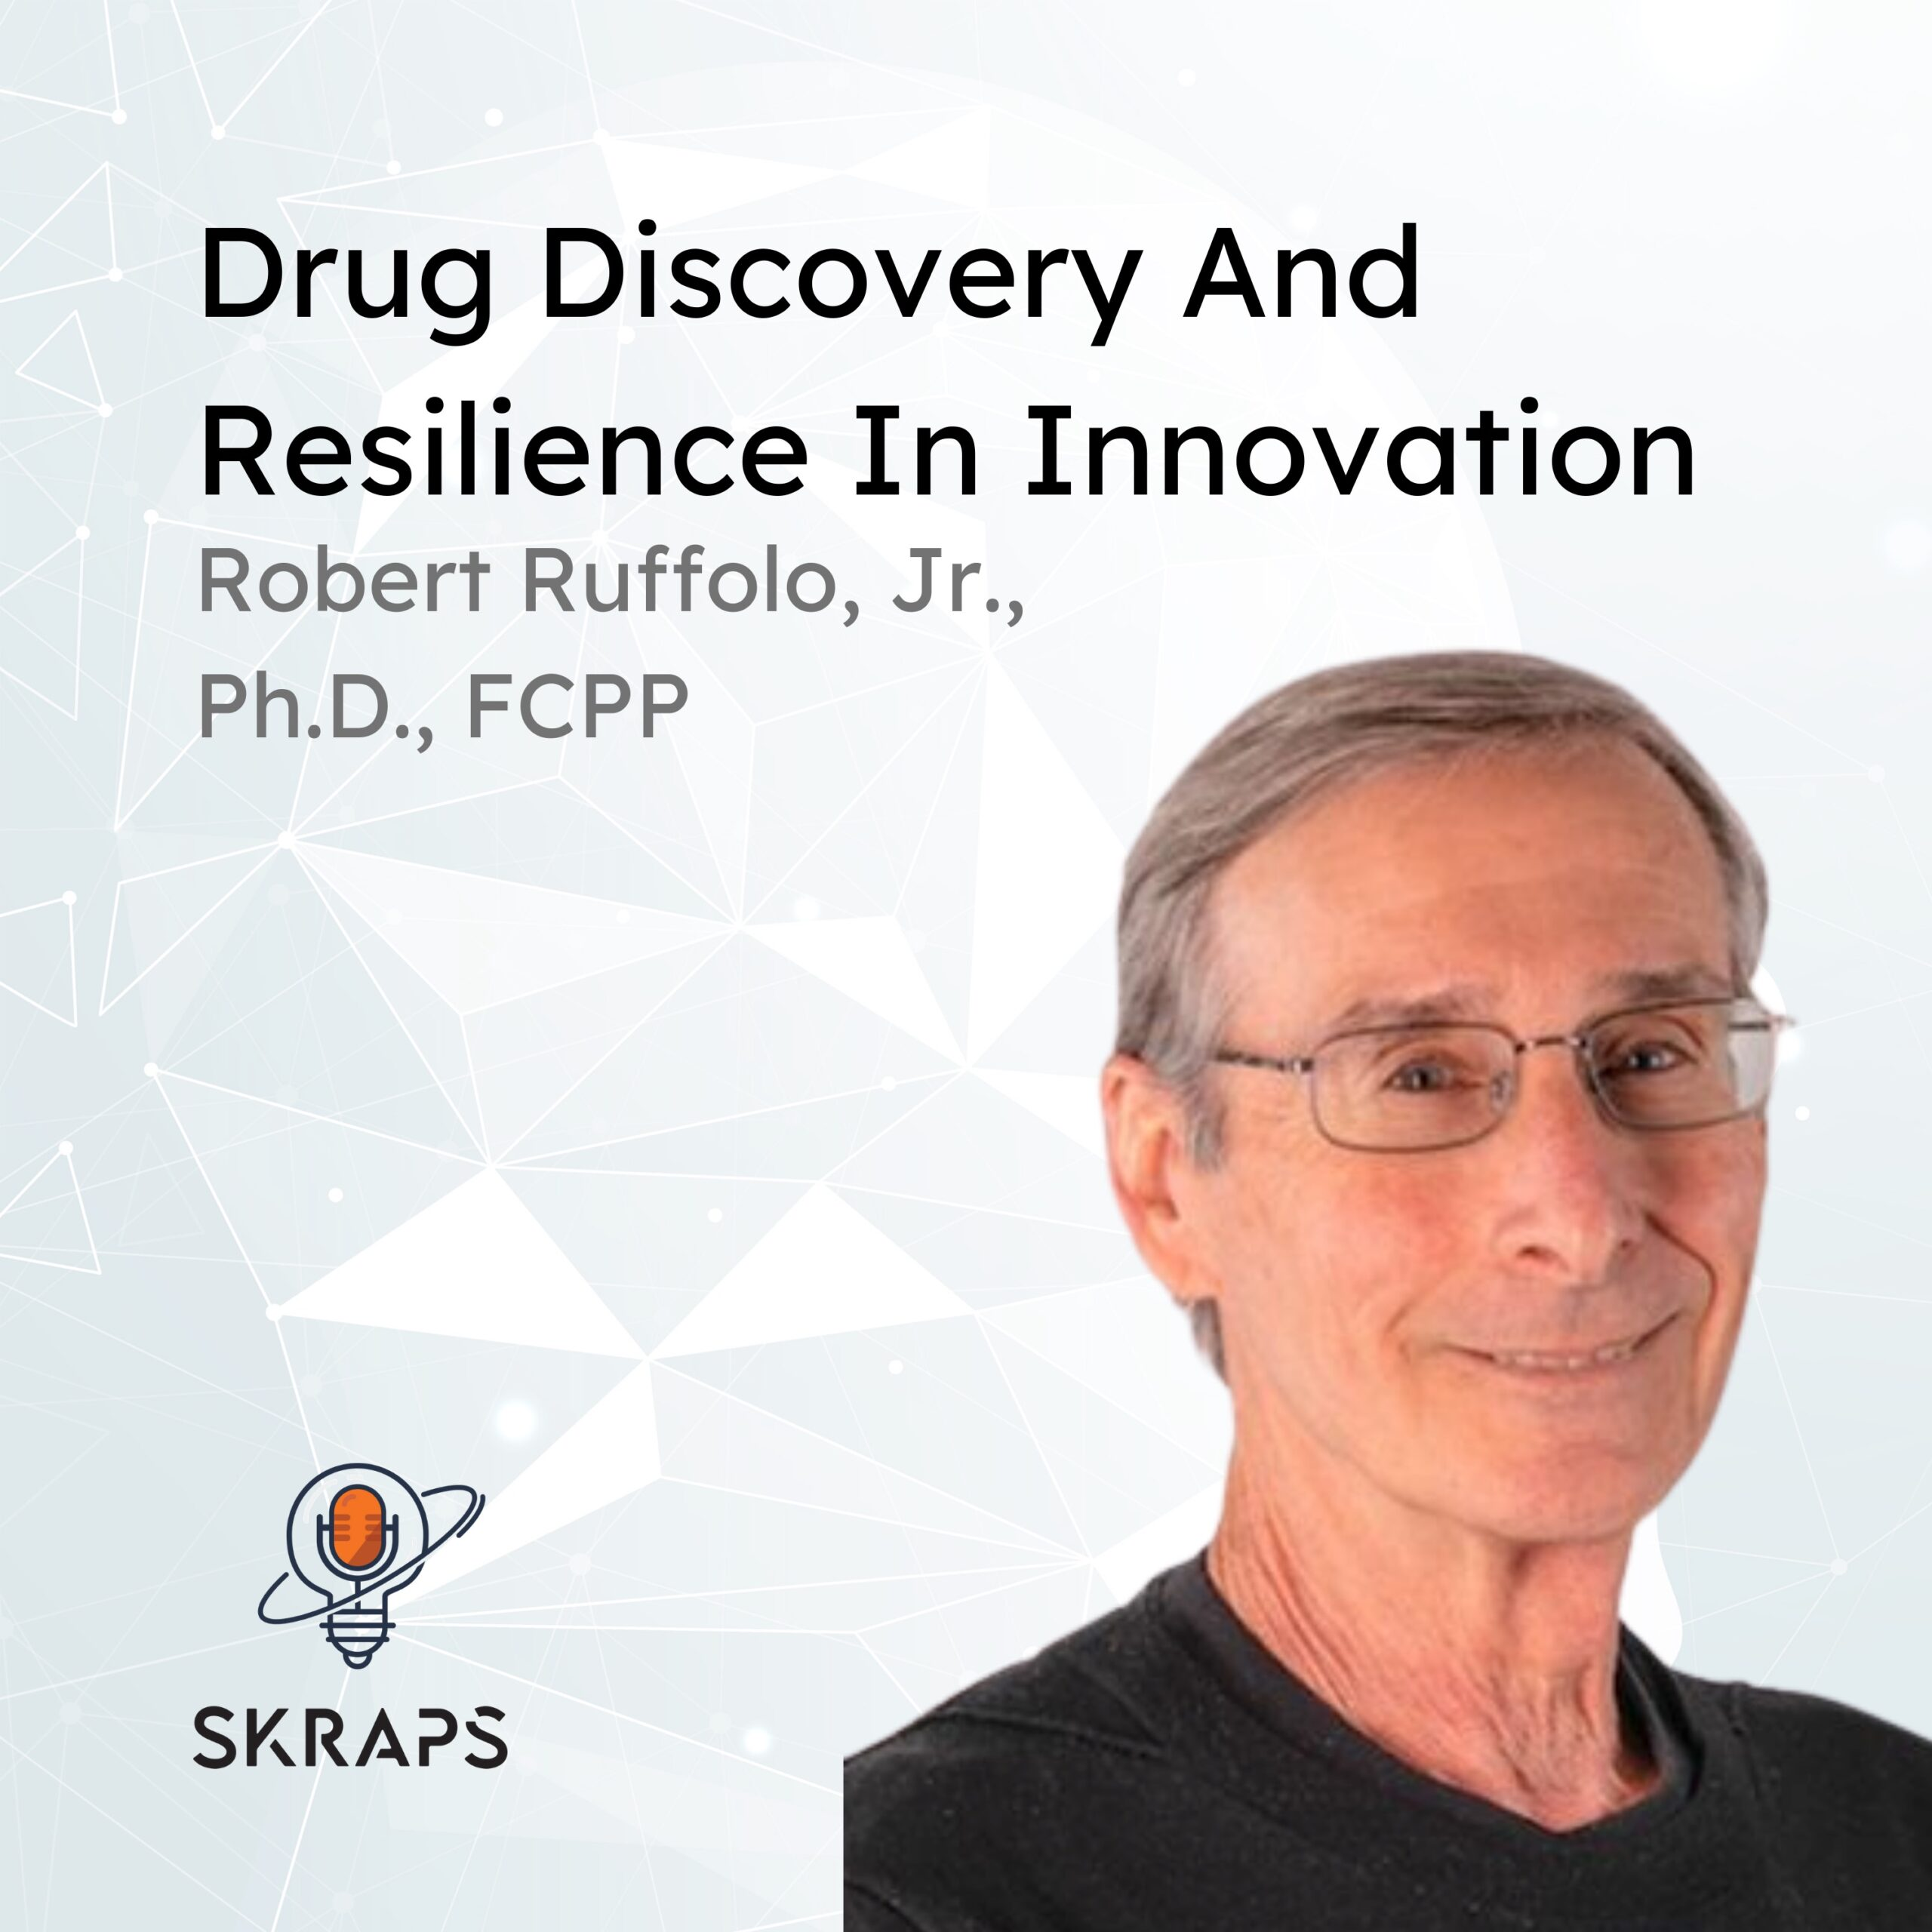 Drug Discovery and Resilience in Innovation